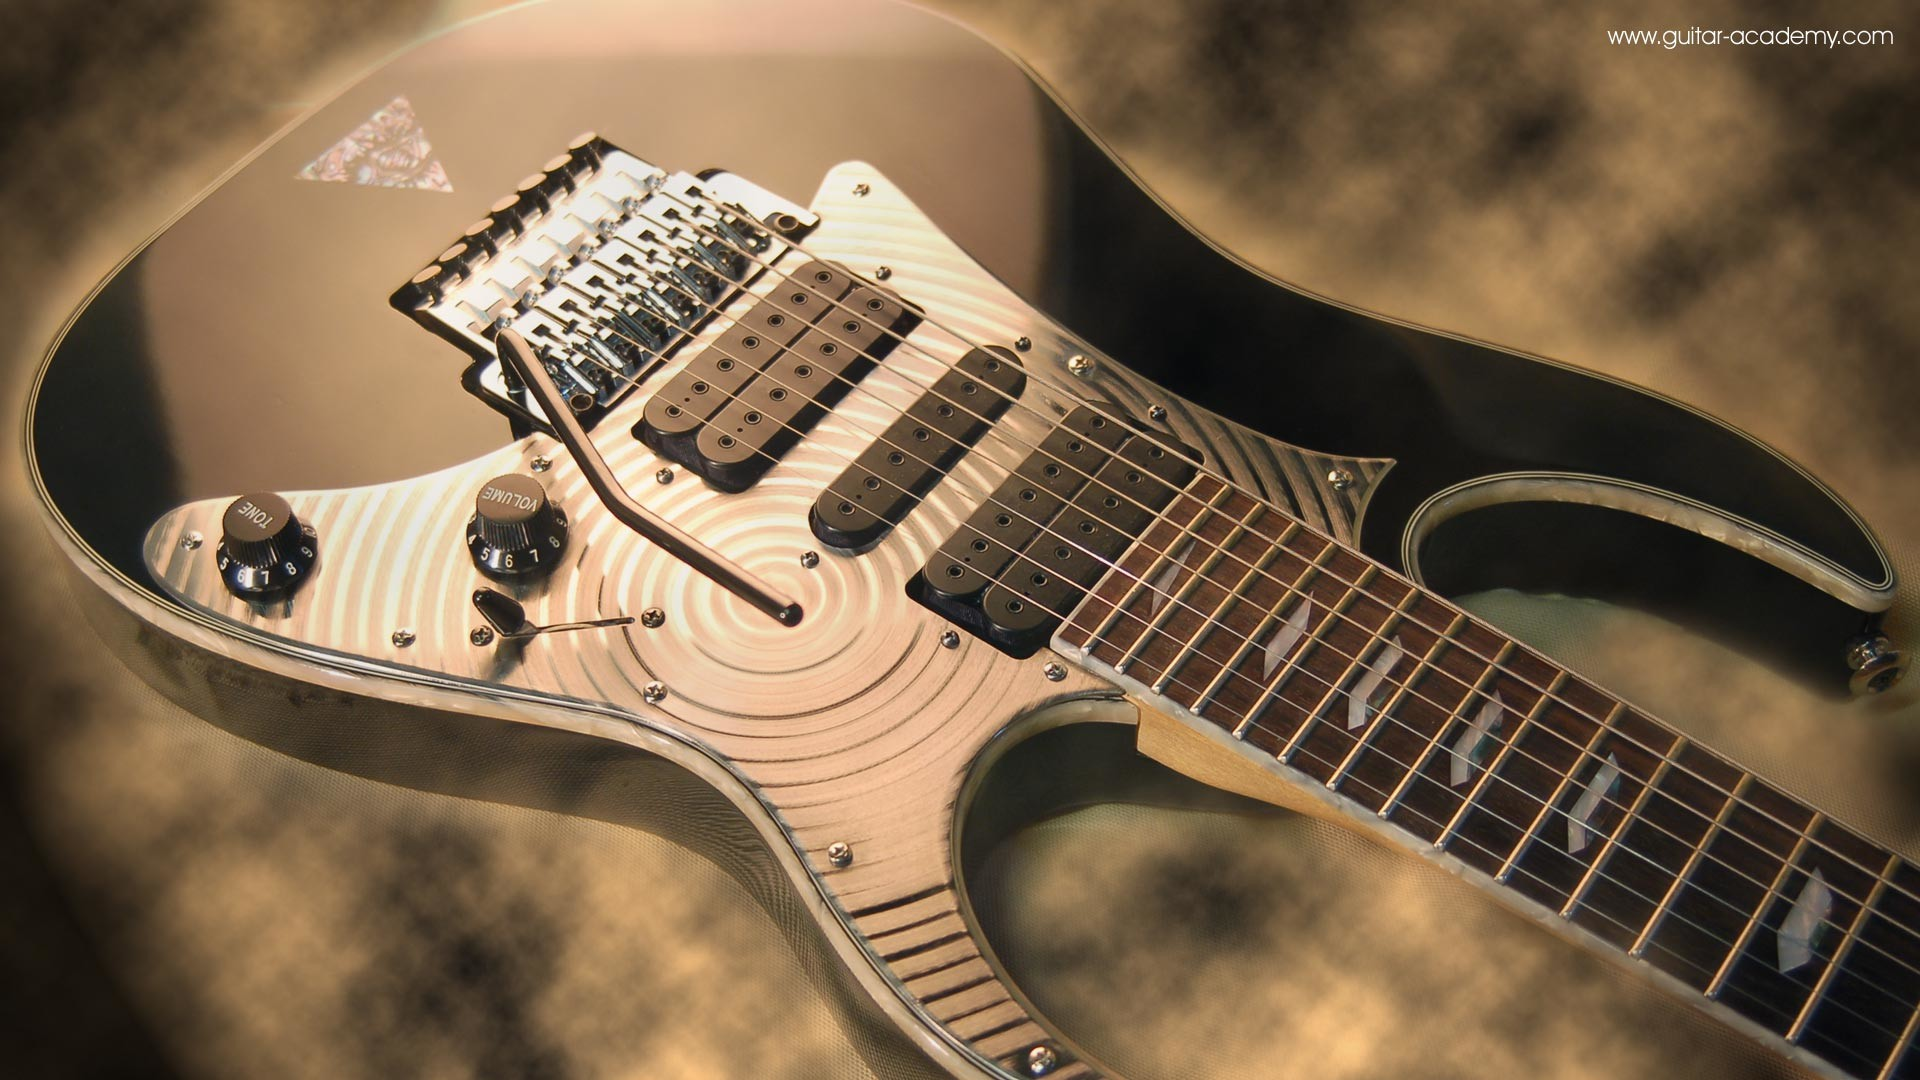 fender stratocaster wallpaper hd 63 images